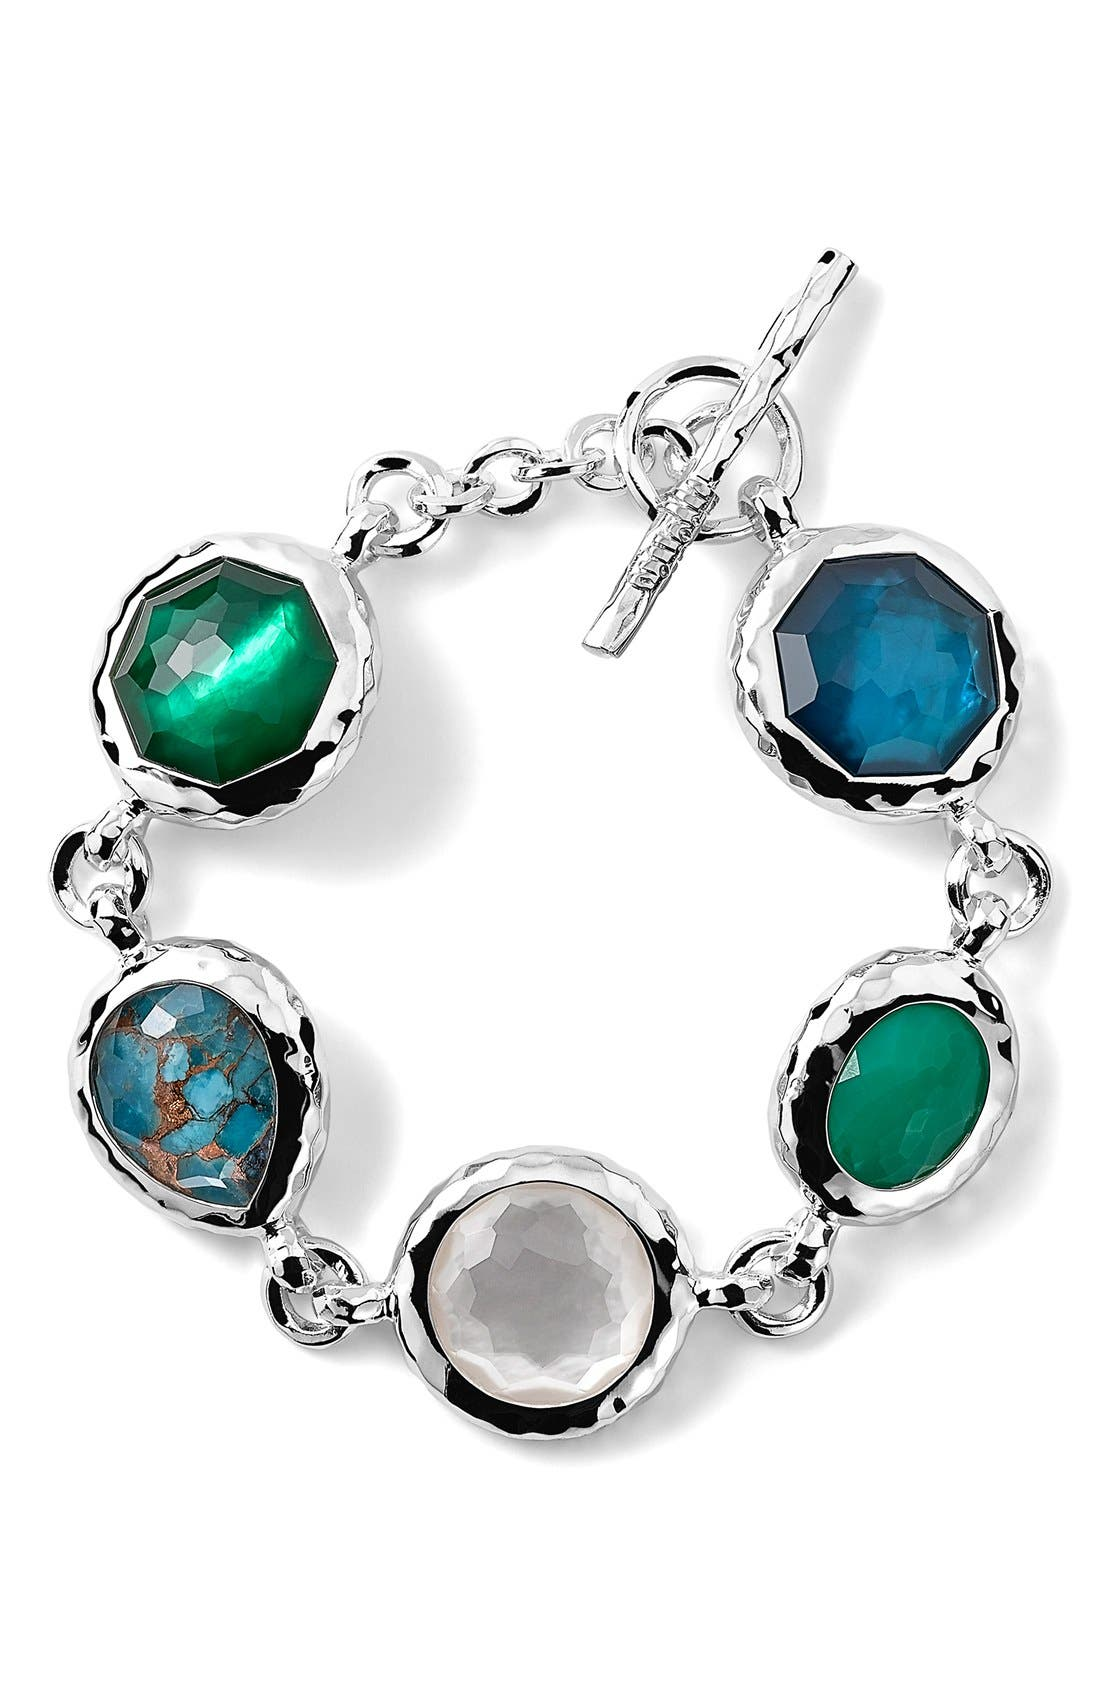 Main Image - Ippolita 'Wonderland' 5-Stone Toggle Bracelet (Nordstrom Exclusive)